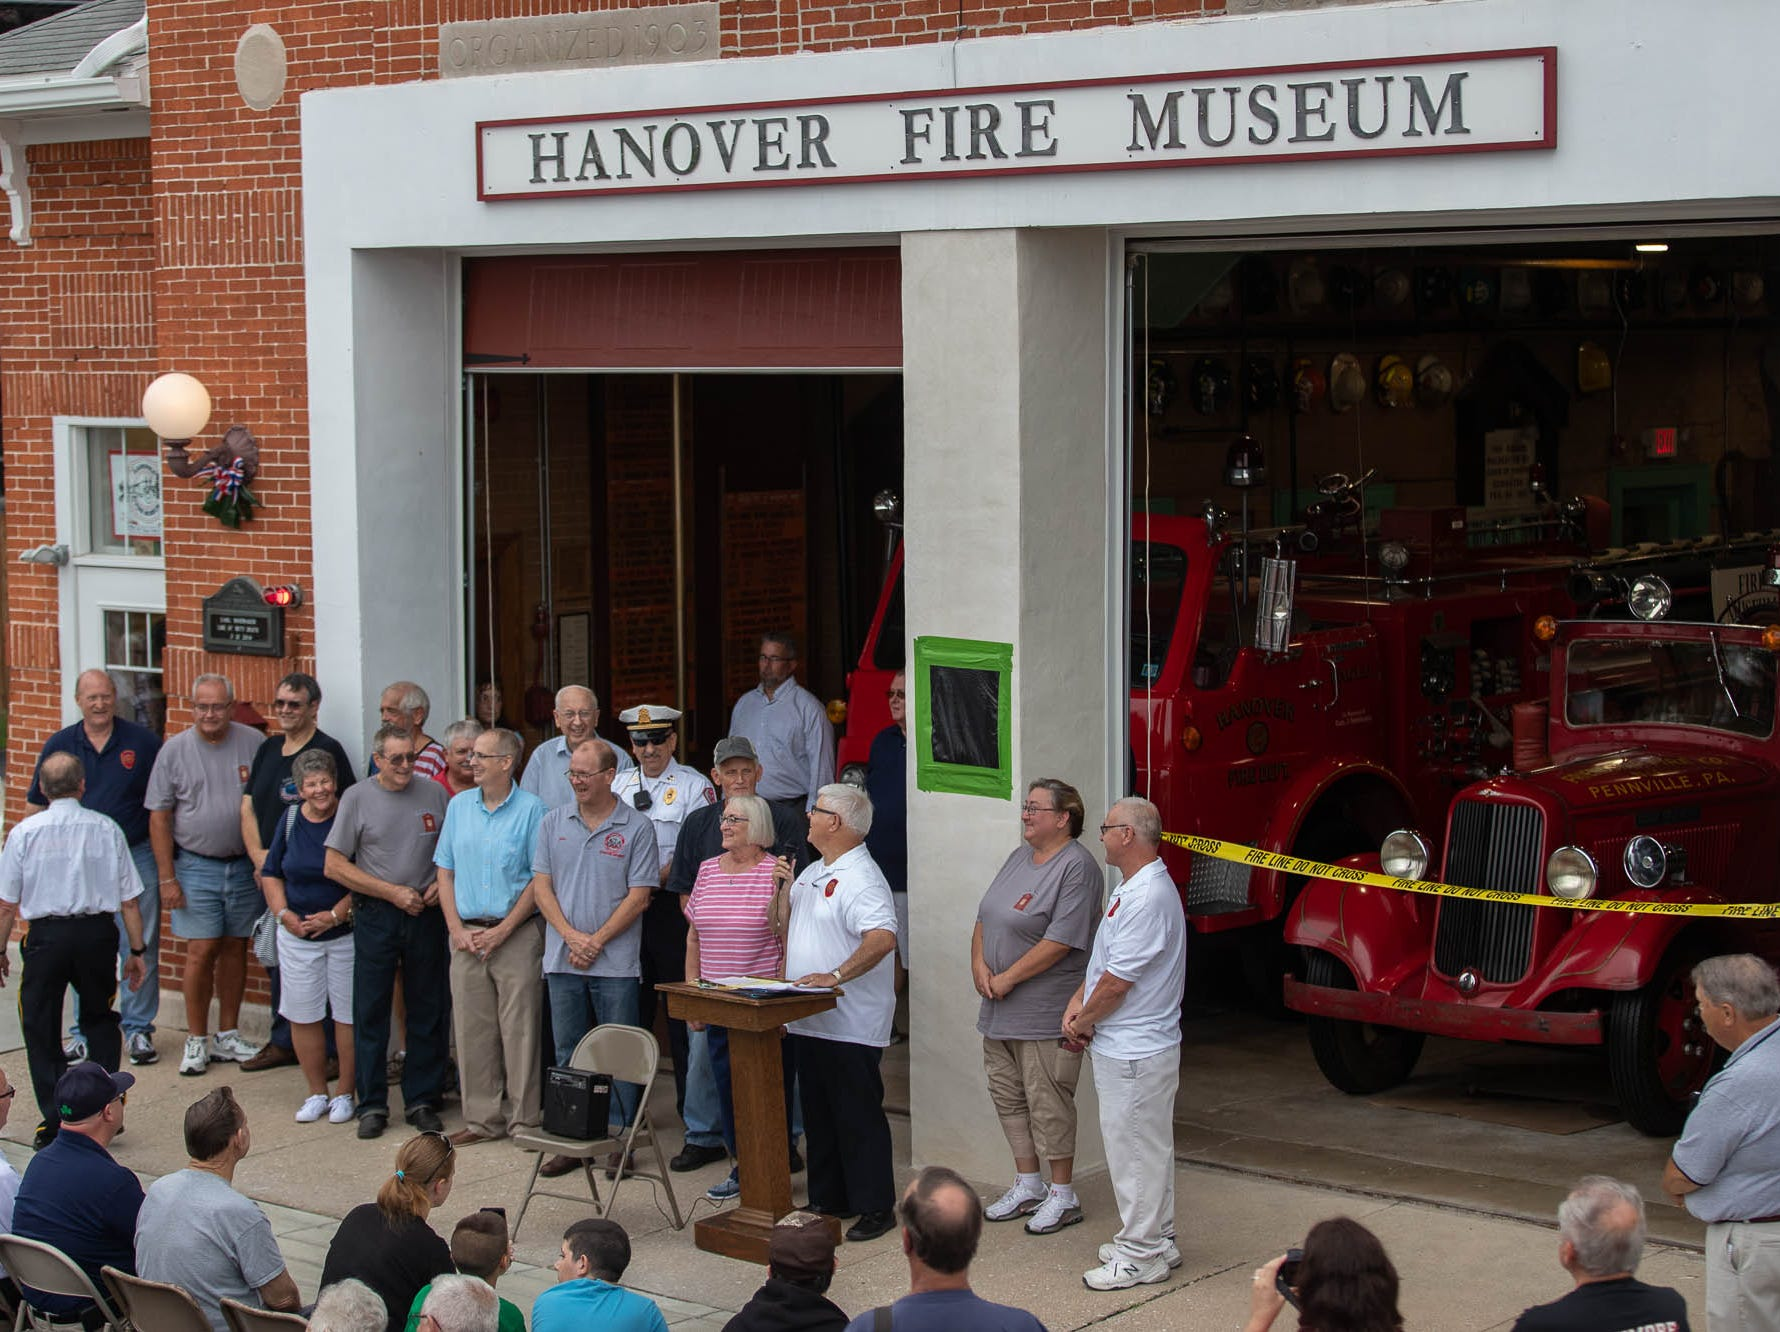 Volunteers and family from the Eagle Fire Company stand together at the podium during the dedication ceremony for the new Greater Hanover Area Fire Museum, Saturday, Sept. 1, 2018, in Hanover.